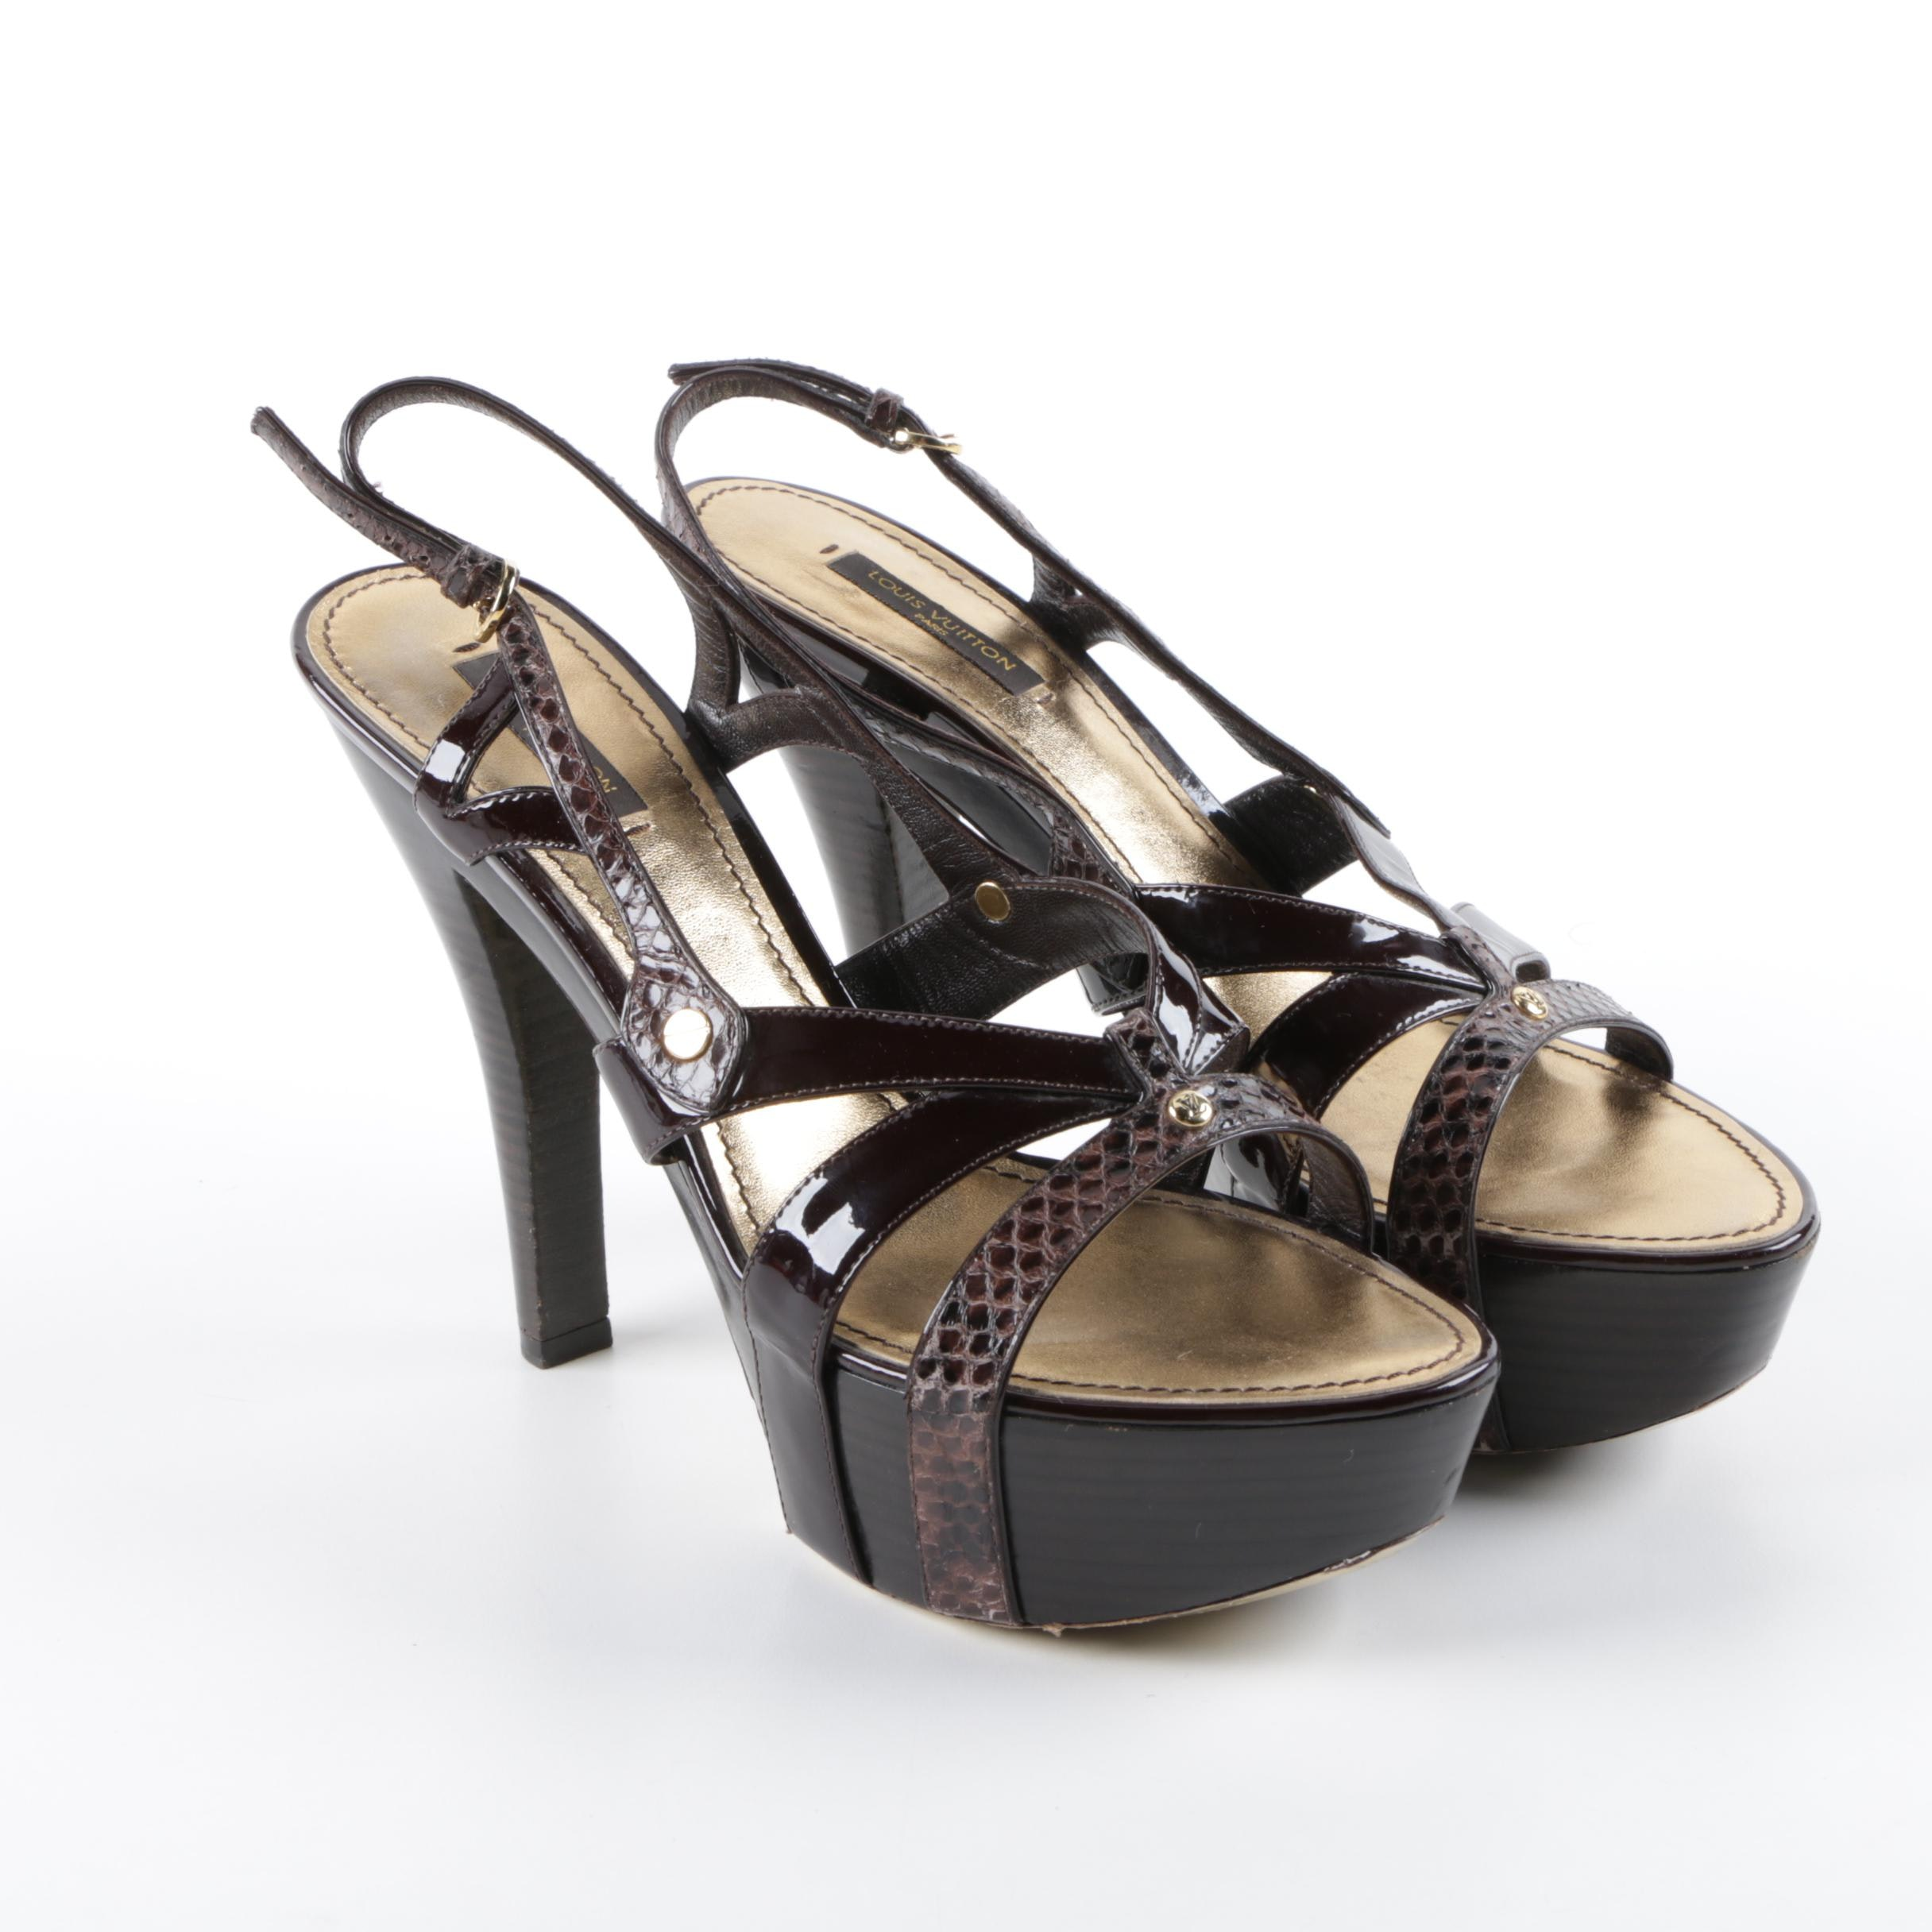 Louis Vuitton of Paris Dyed Brown Python Skin and Patent Leather Platform Heels